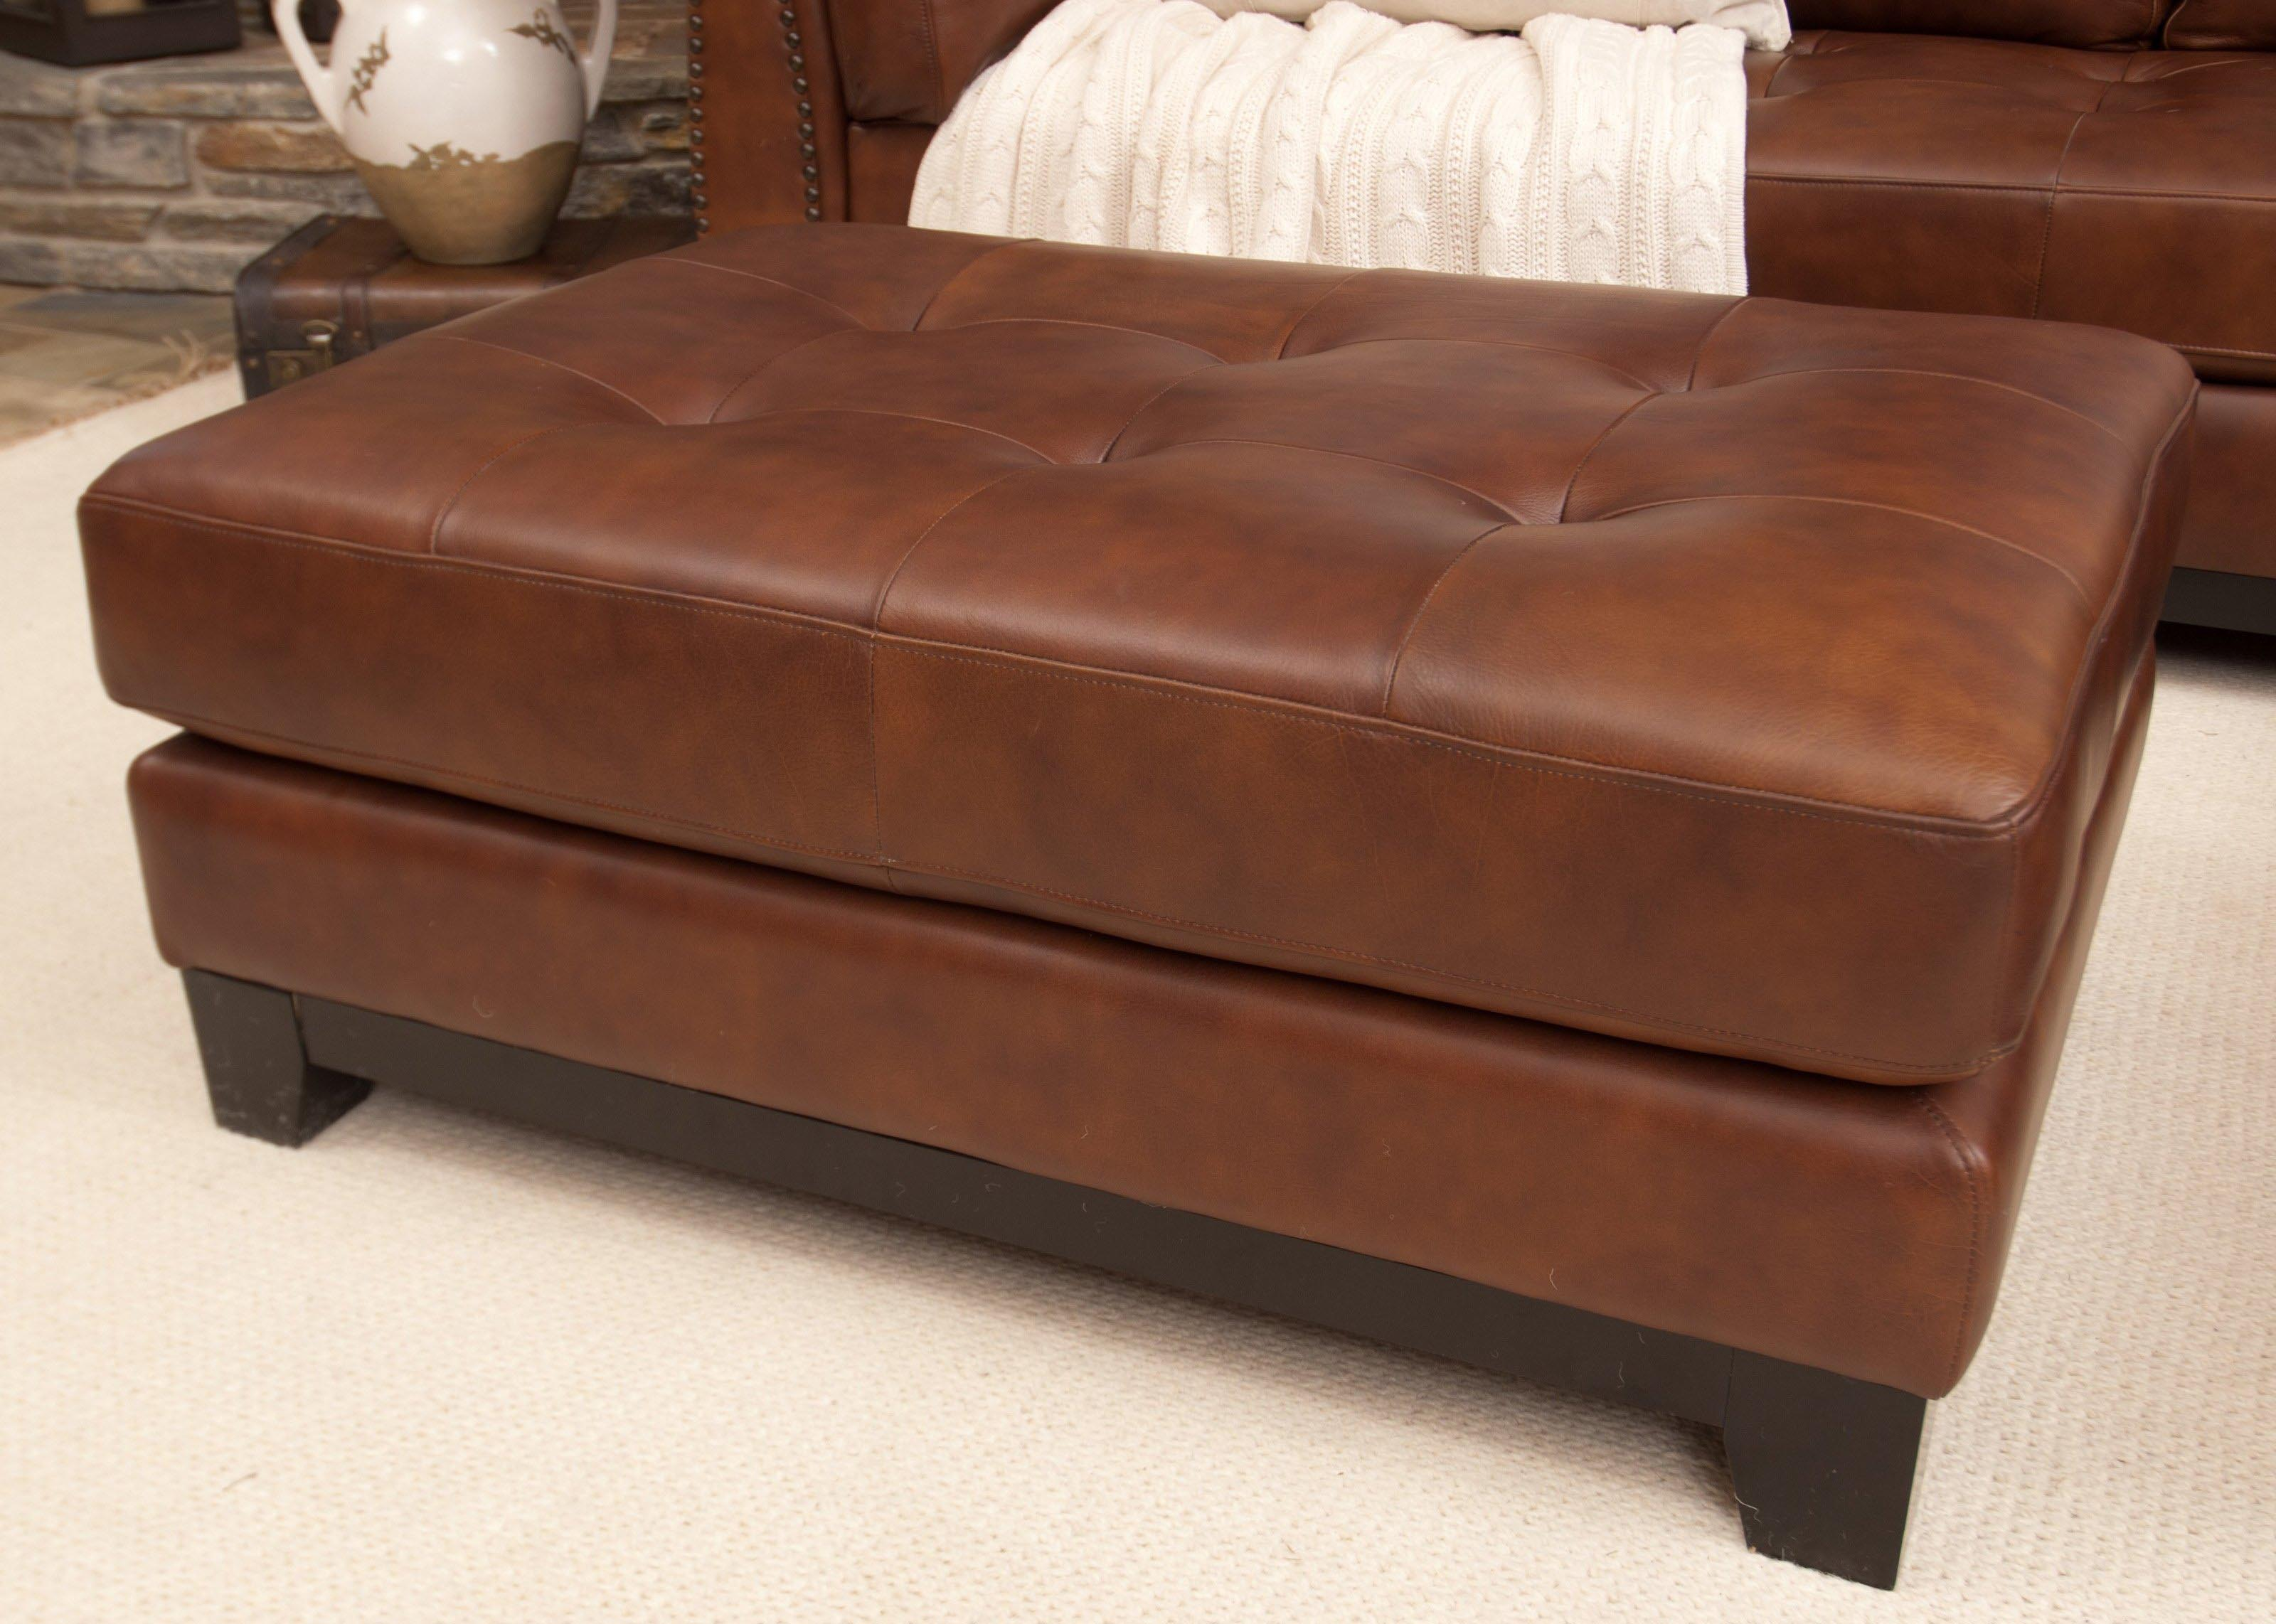 Leather Tufted Coffee Table